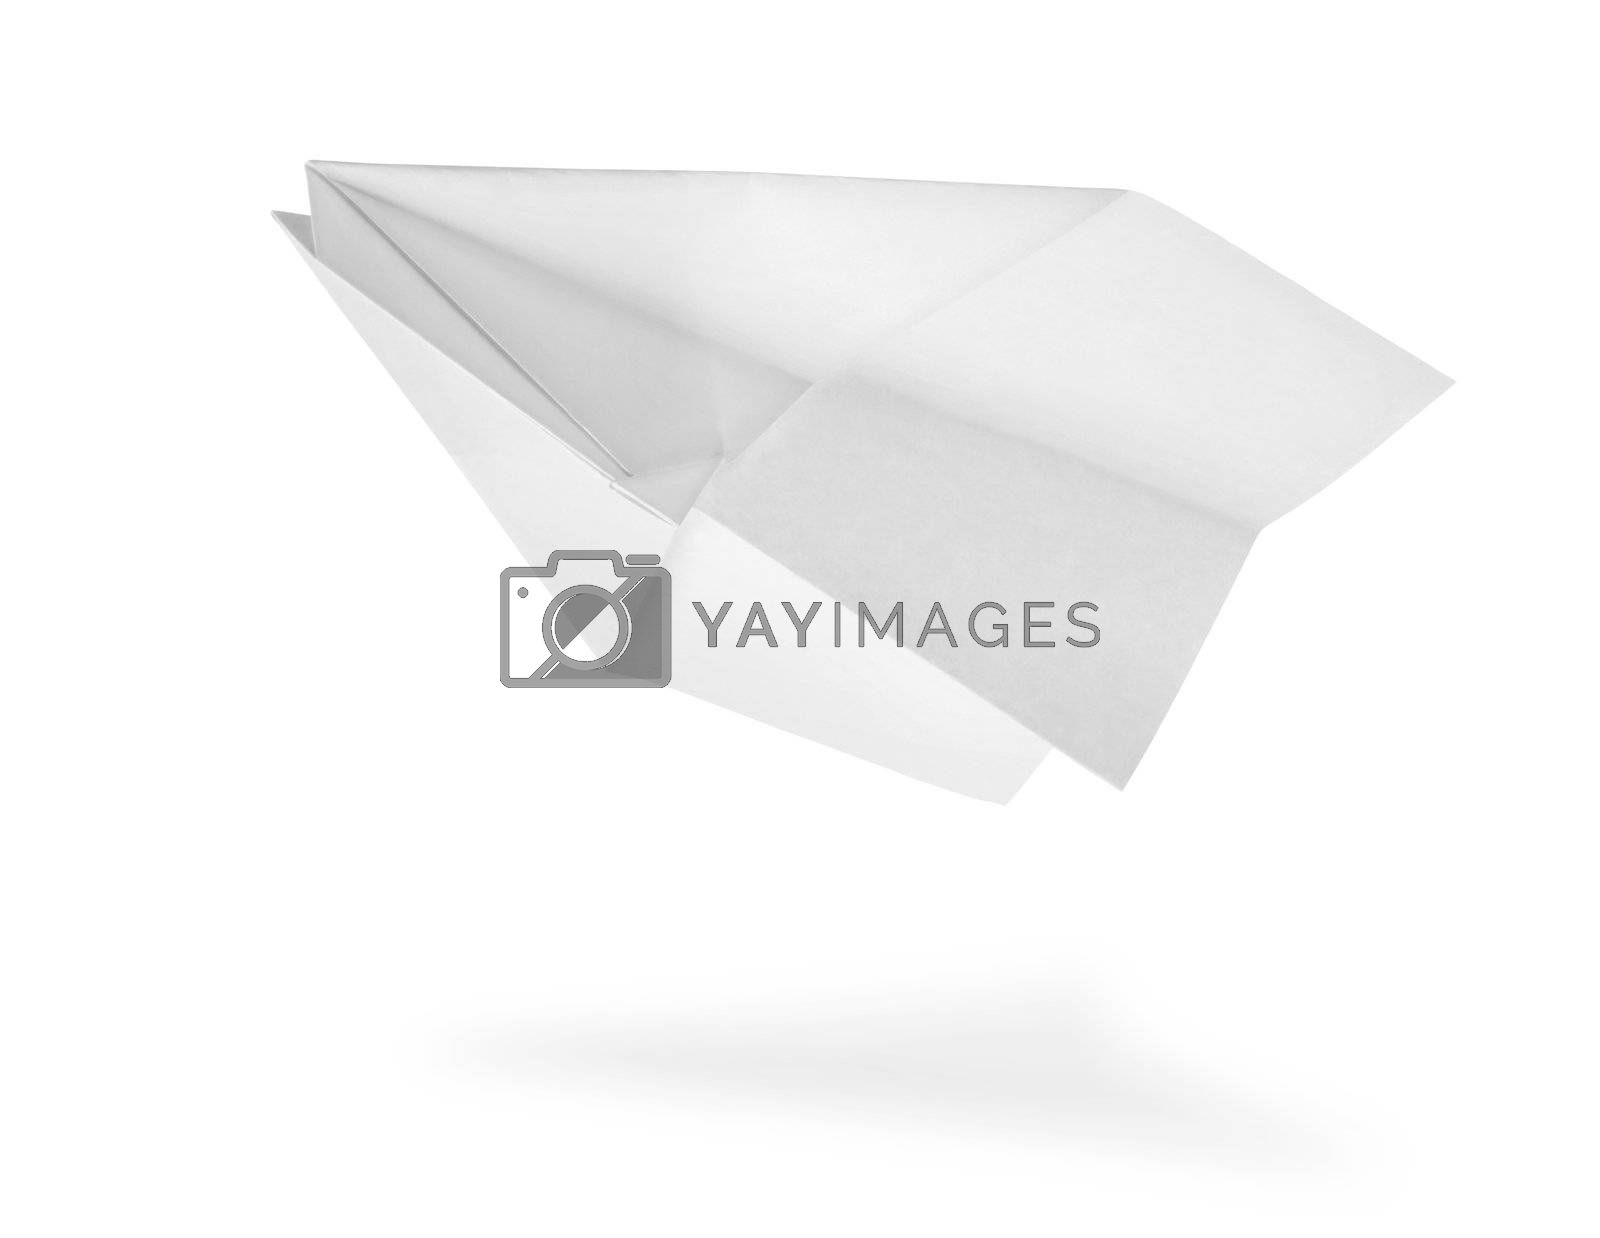 Plane made of a paper isolated on a white background